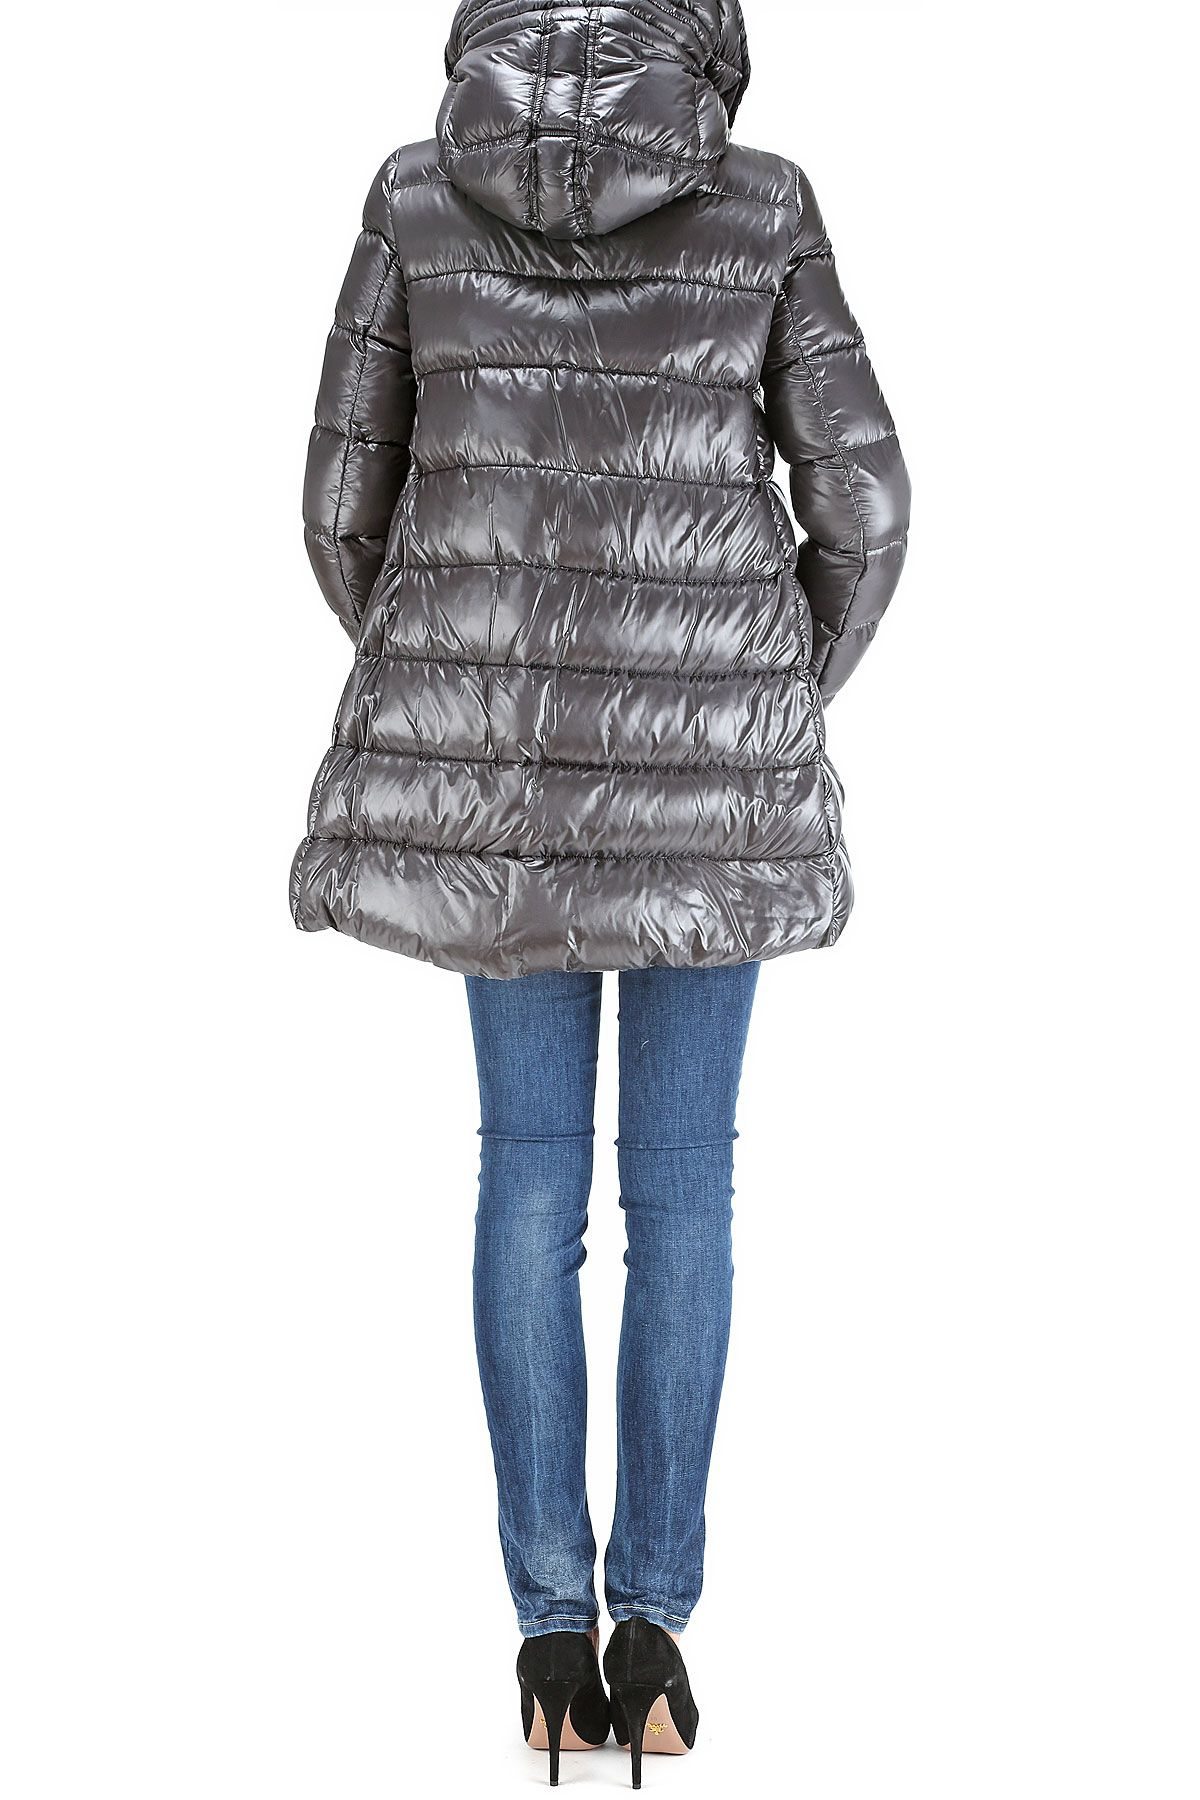 61cd2c56d91 Moncler women's clothing. Womens designer clothing by Moncler from the  latest collection and many other women's fashion designer clothing.